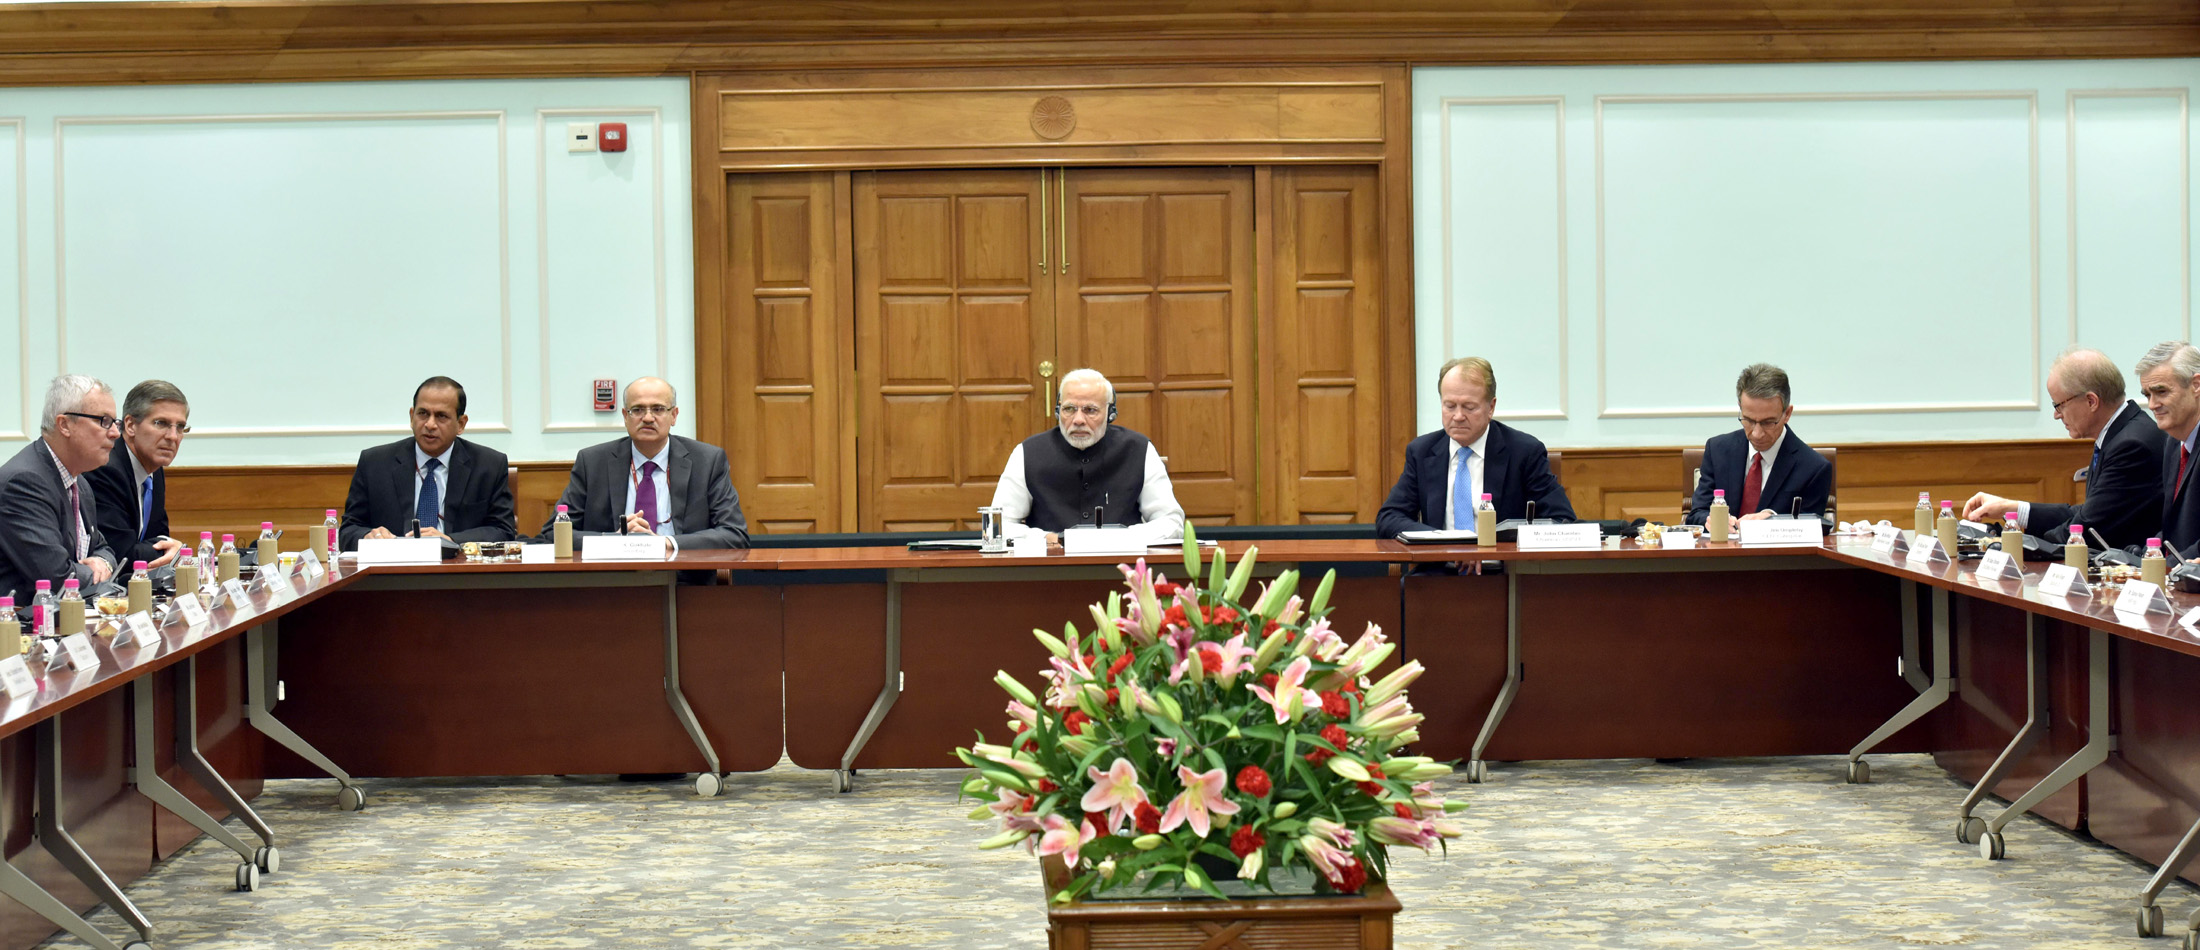 PM Modi addressed the board members of United States India Strategic Partnership Forum (USISPF)